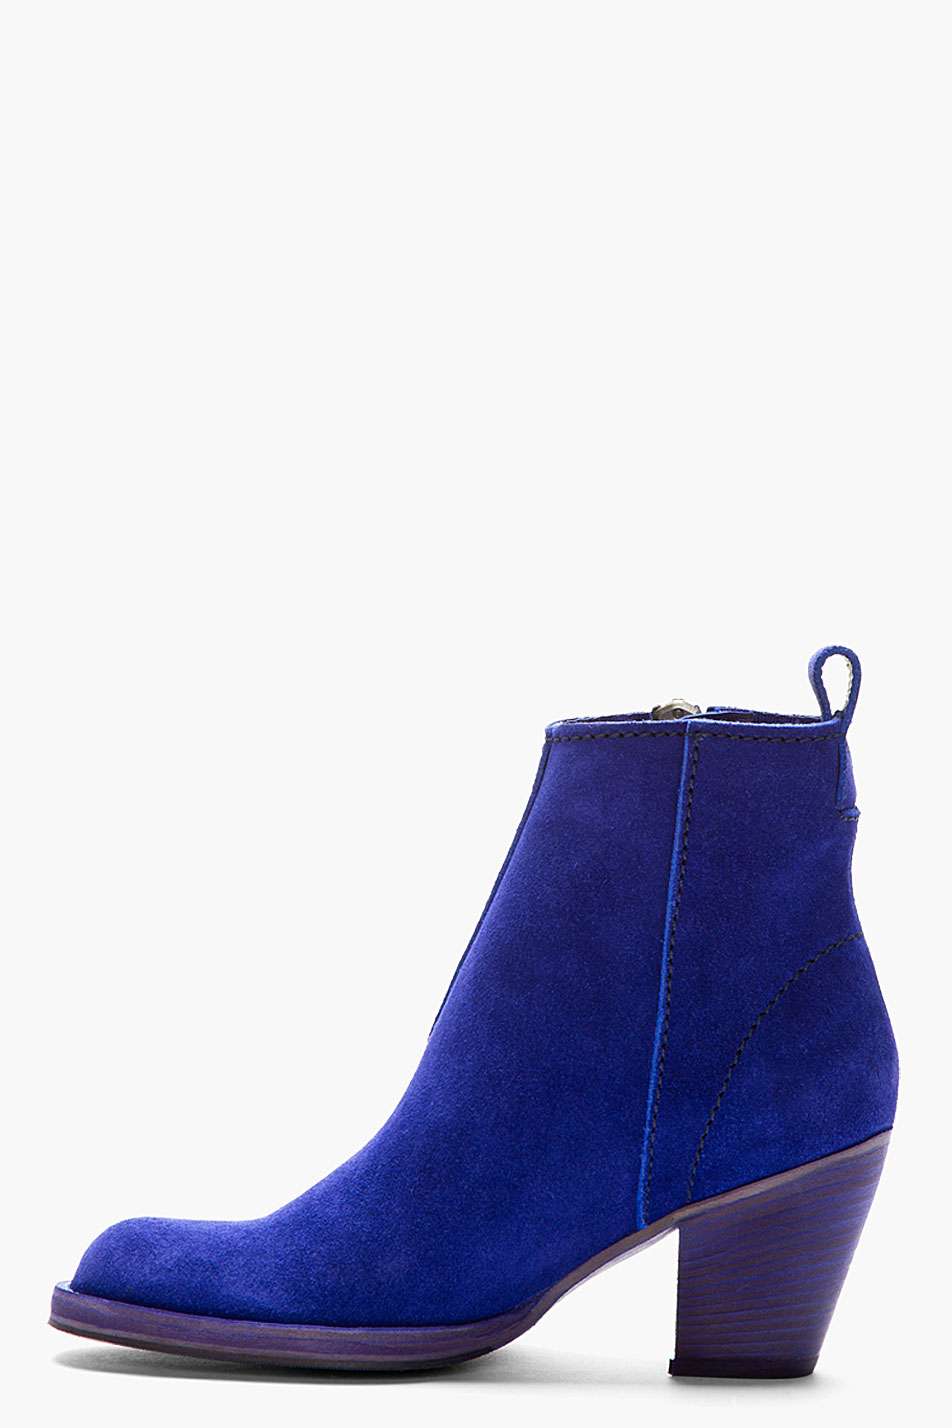 Acne studios Indigo Blue Cuban_heel Suede Ankle Boot in ...